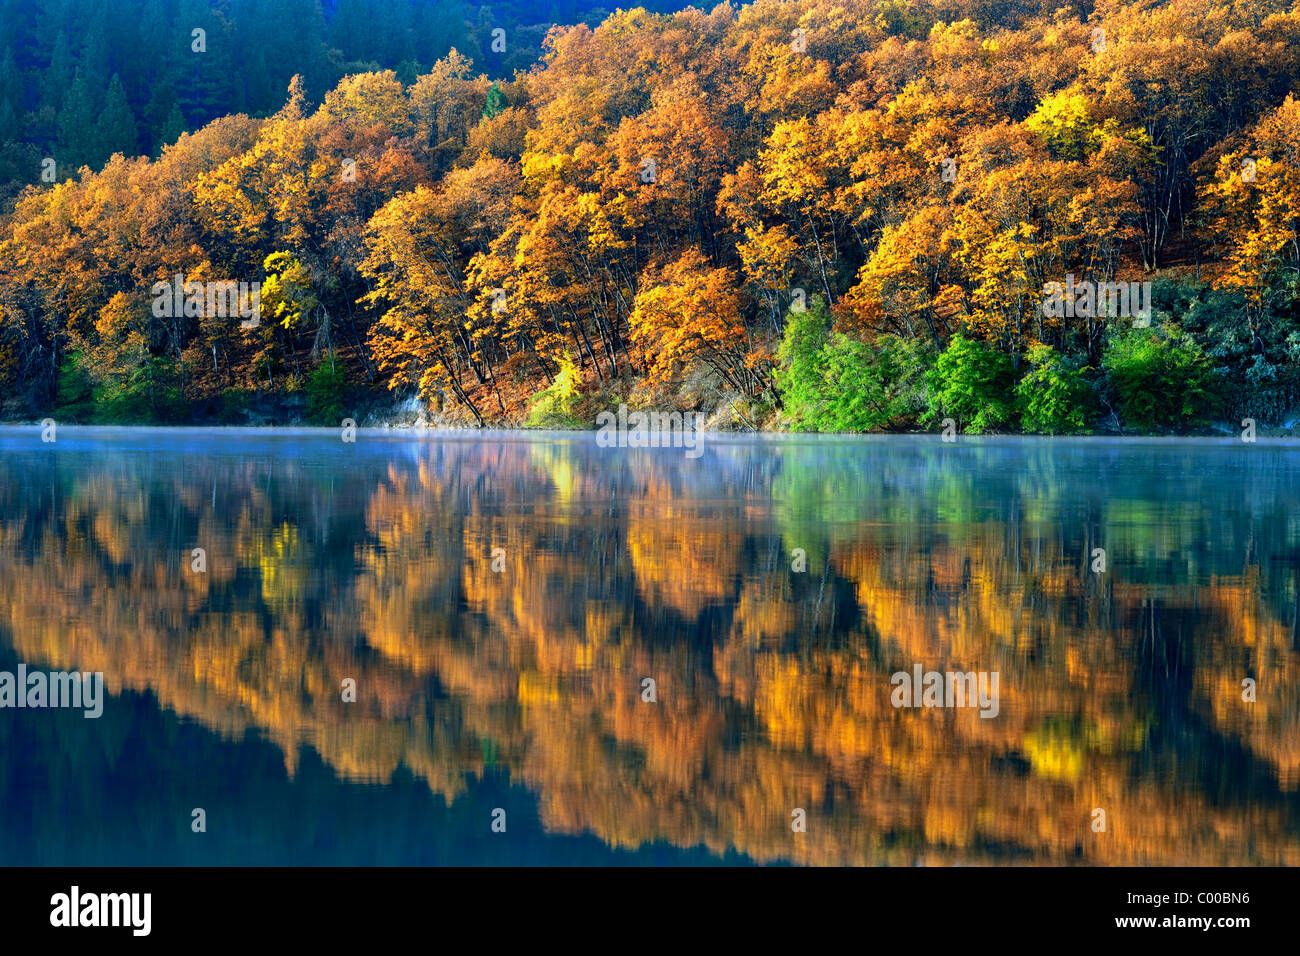 Autumn morning reflection as mist forms on California's Lake Britton. - Stock Image